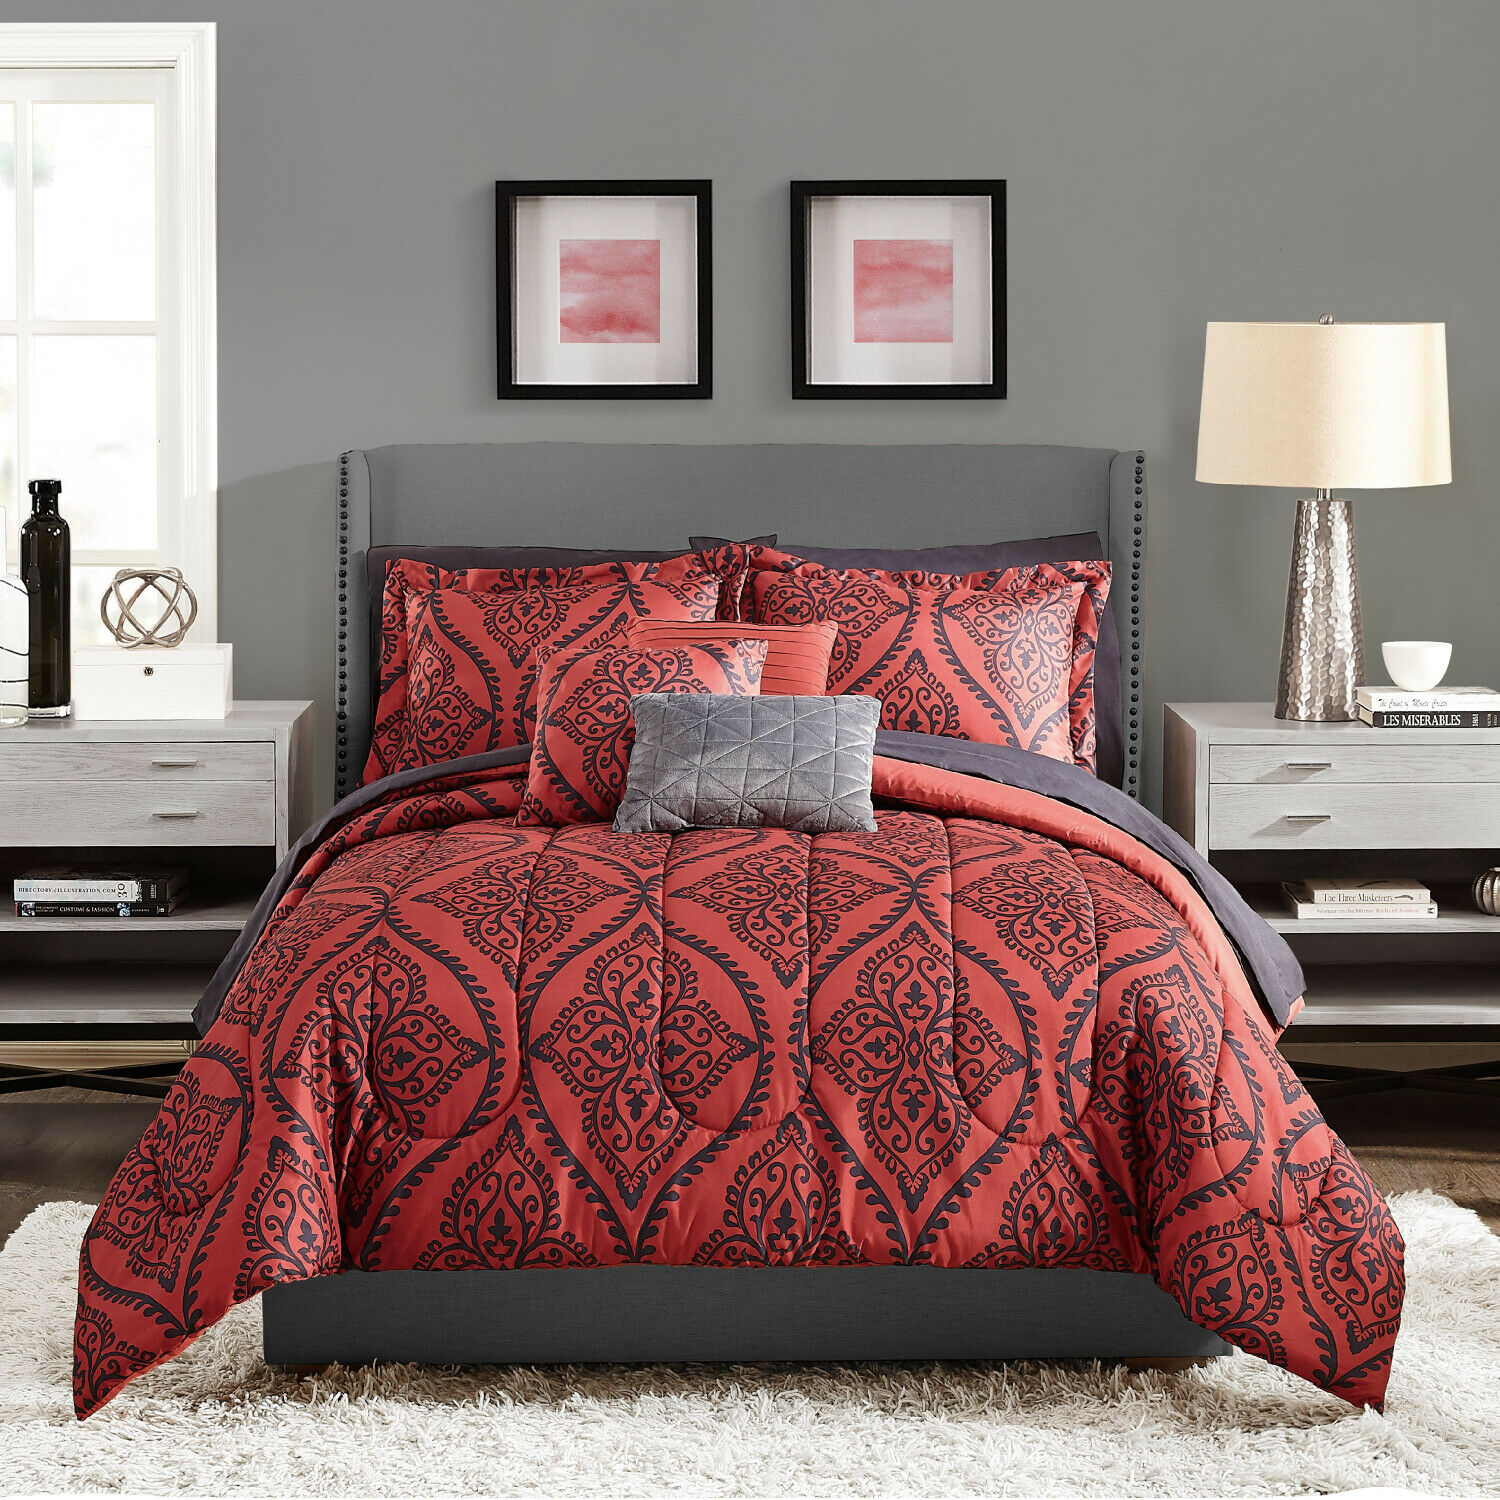 Bedding Set Queen Red And Black Damask 10 Piece Comforter 2 Shams Pillowcases For Sale Online